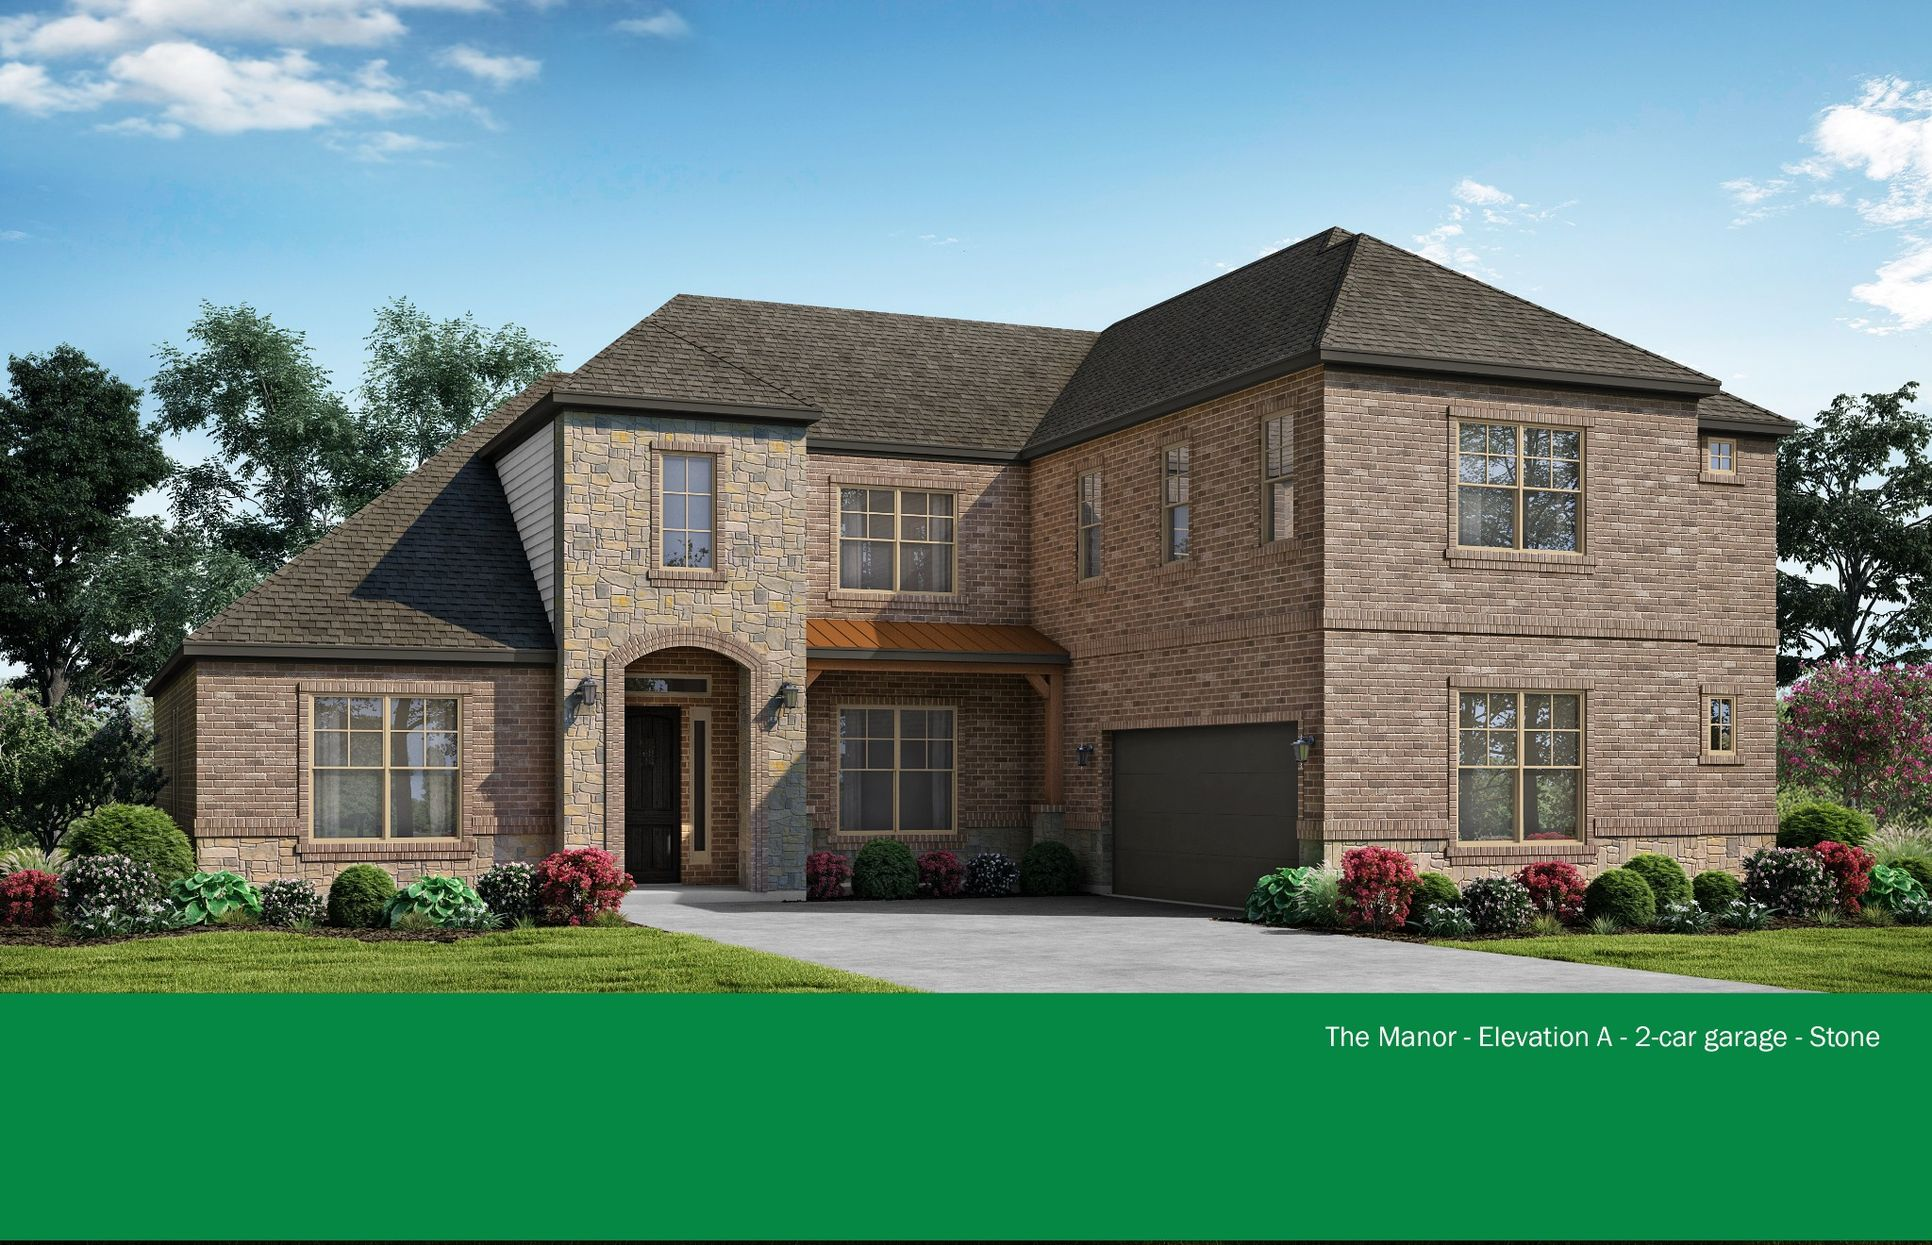 The Manor - Elevation A - 2-car garage - Stone. Images are artist renderings and will differ from...:Elevation A + Stone